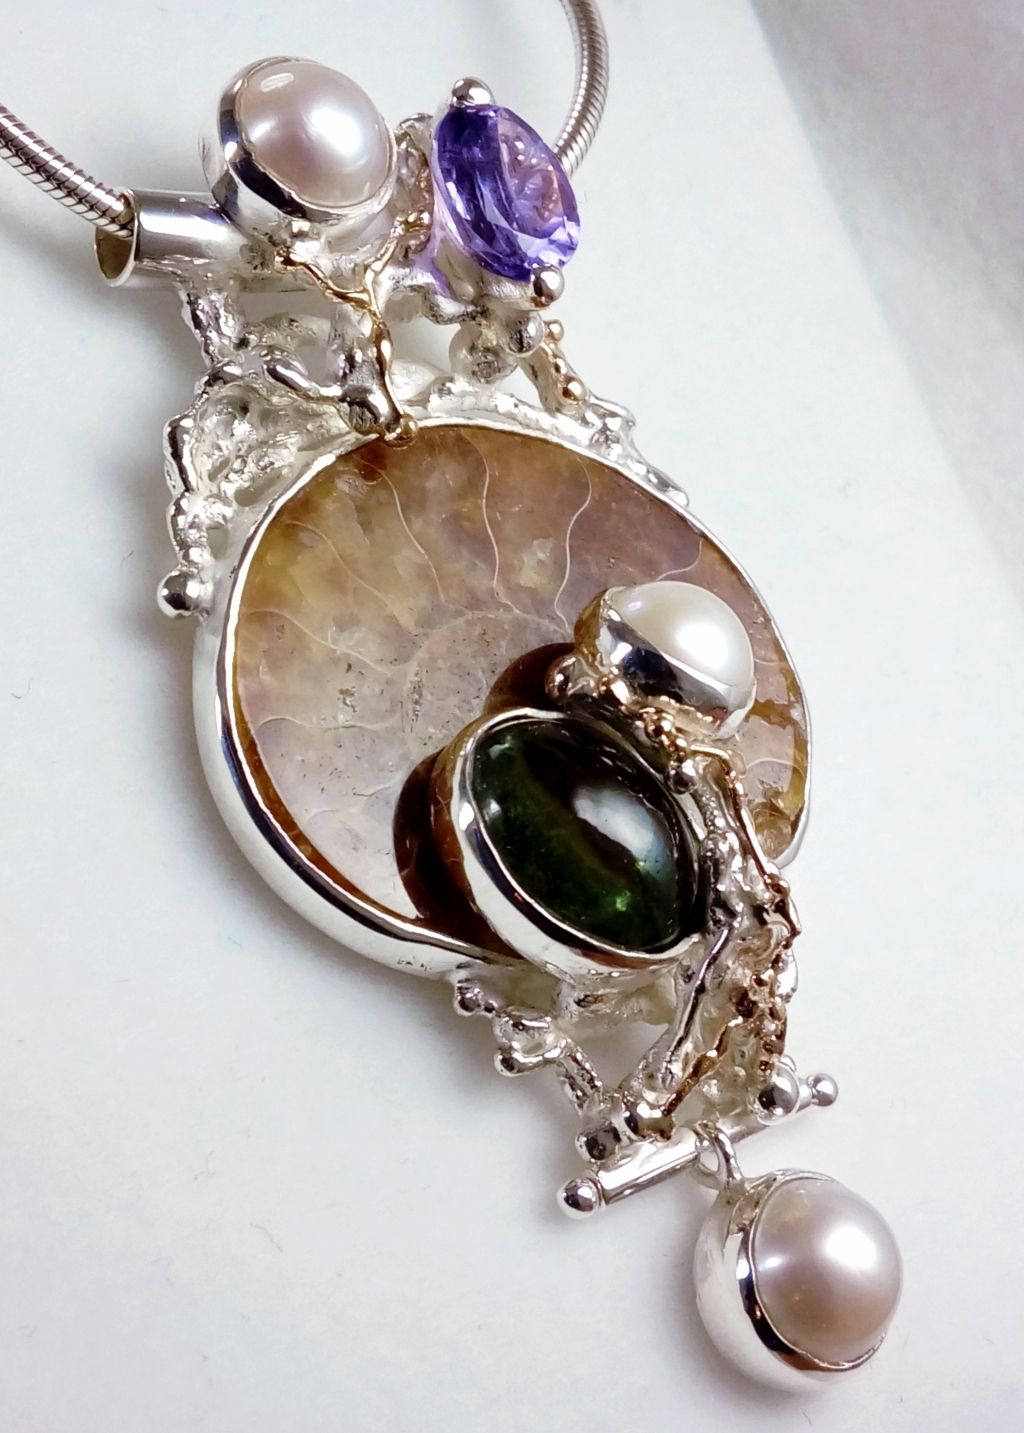 gregory pyra piro, pendant #4921, sterling silver and 14 karat gold pendant, pendant with faceted amethyst and fluorite, pendant with amethyst and ammonite, pendant with ammonite and fluorite, one of a kind handcrafted pendant, original handcrafted jewellery